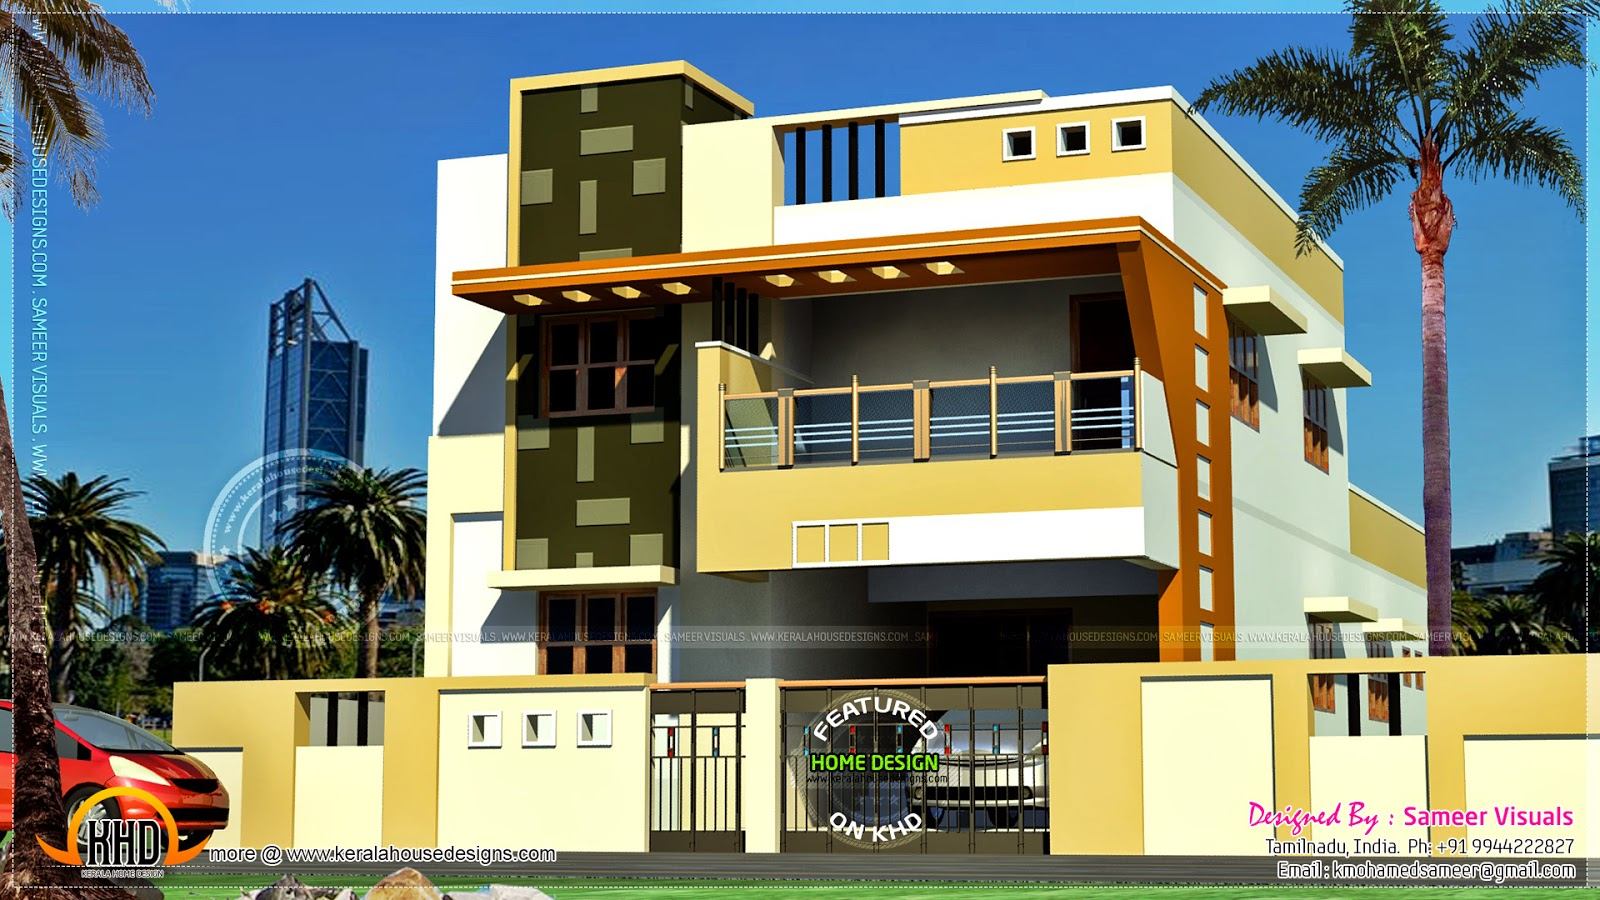 Modern south indian house design kerala home design and for Modern small home designs india